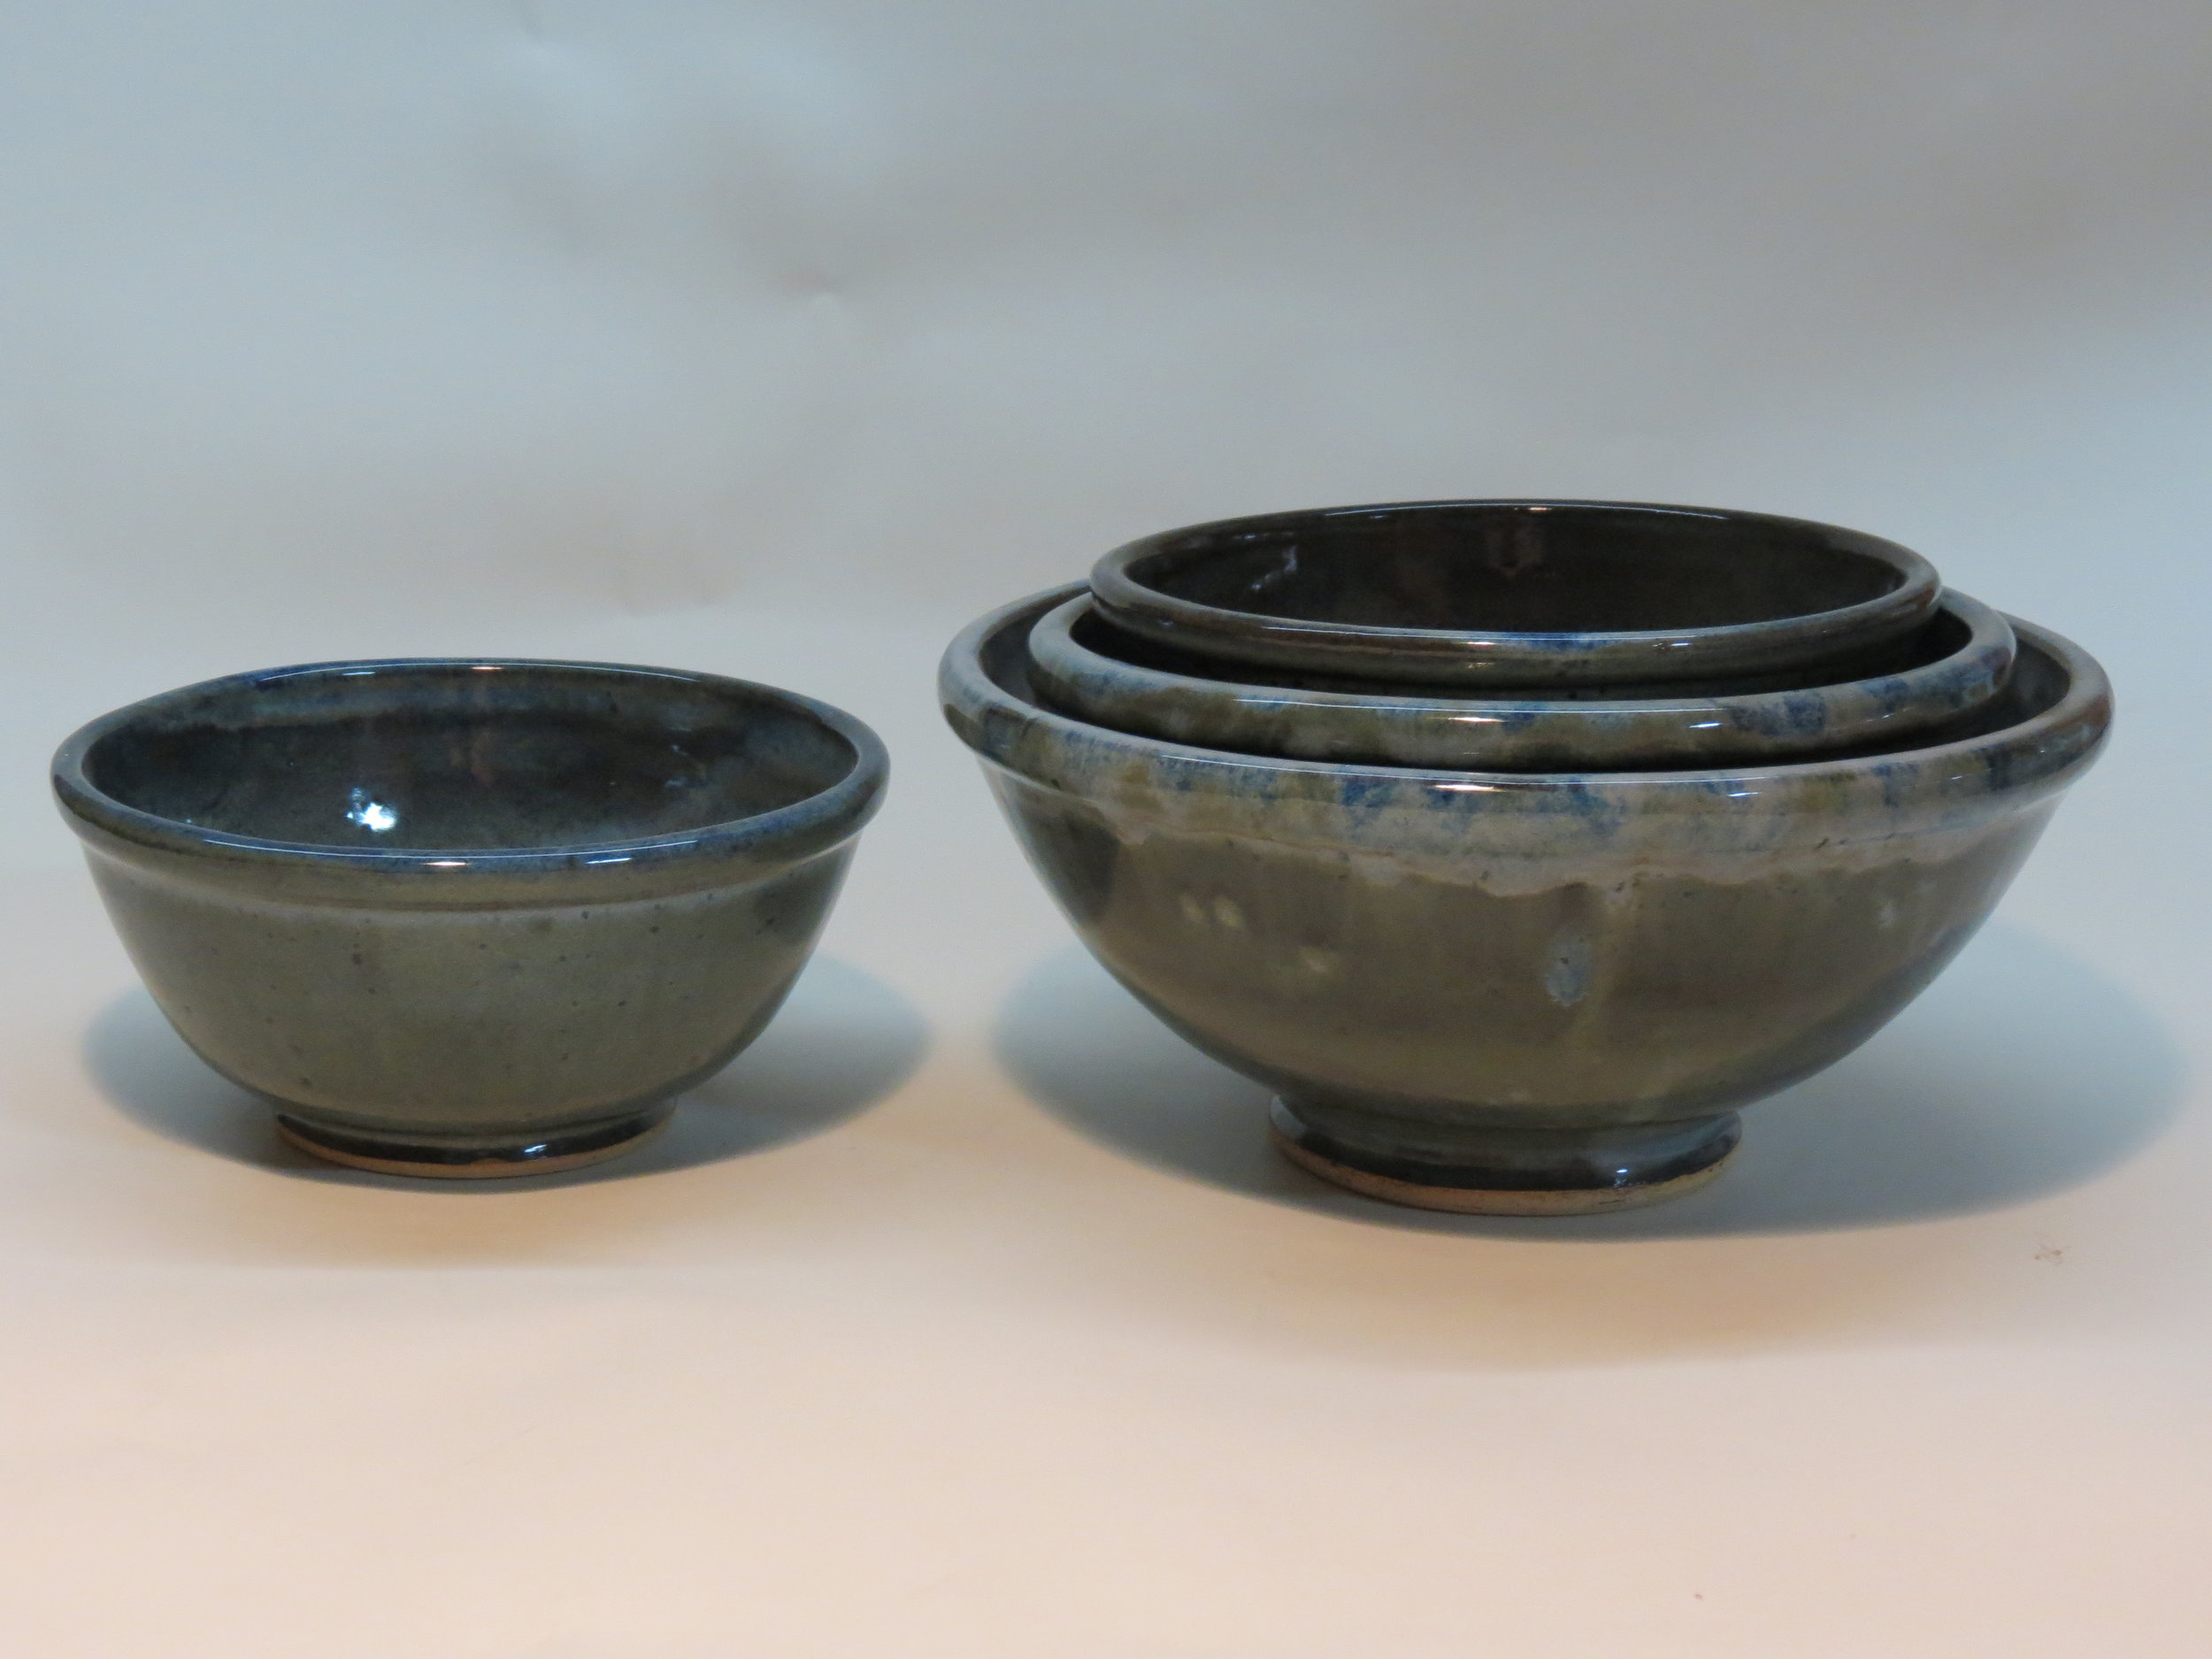 Bowl and nesting bowls with floating blue glaze.